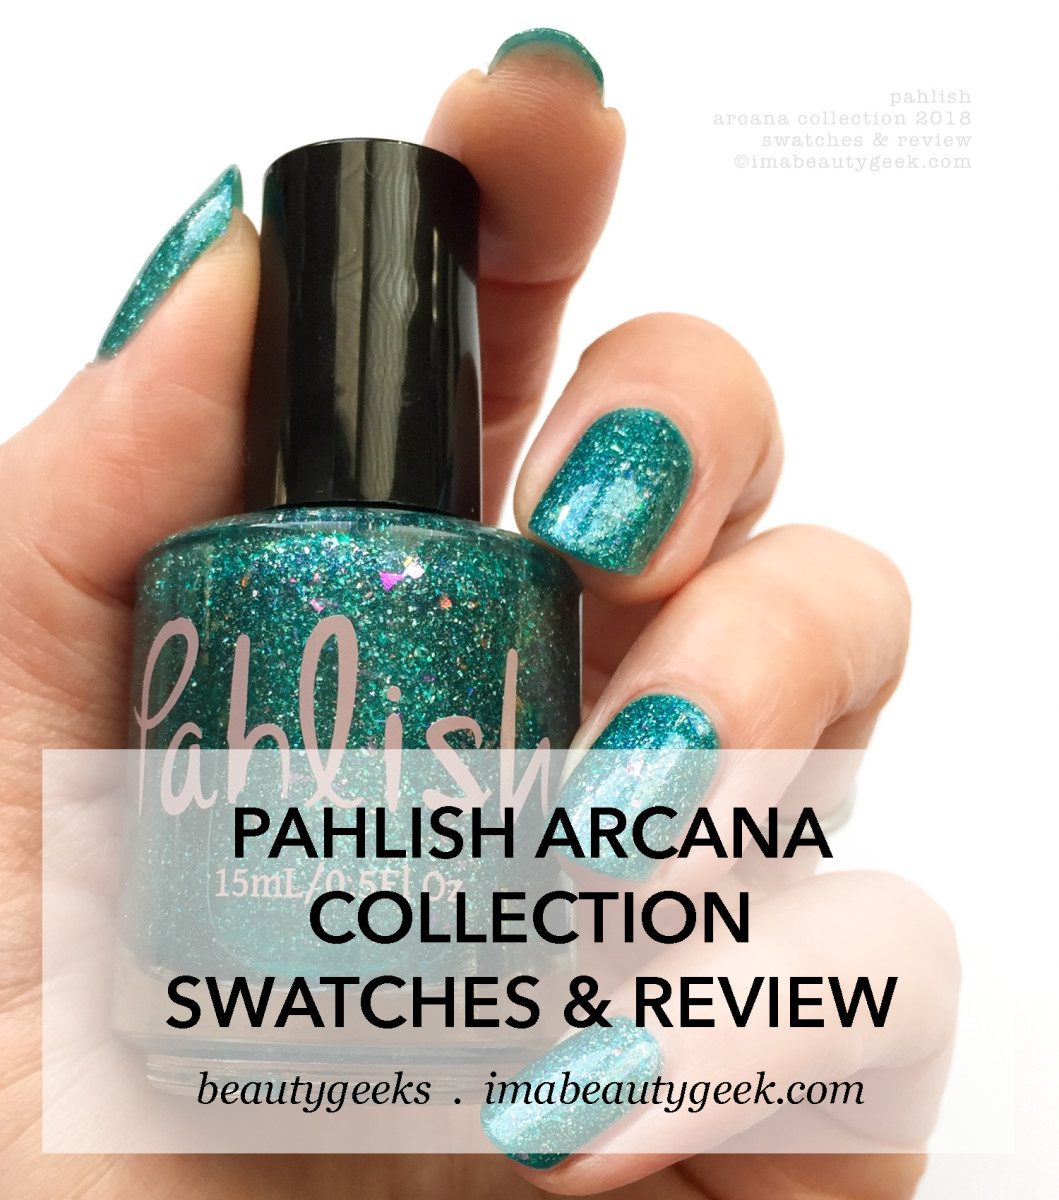 Pahlish Arcana Collection Swatches Review 2018-MANIGEEK-BEAUTYGEEKS